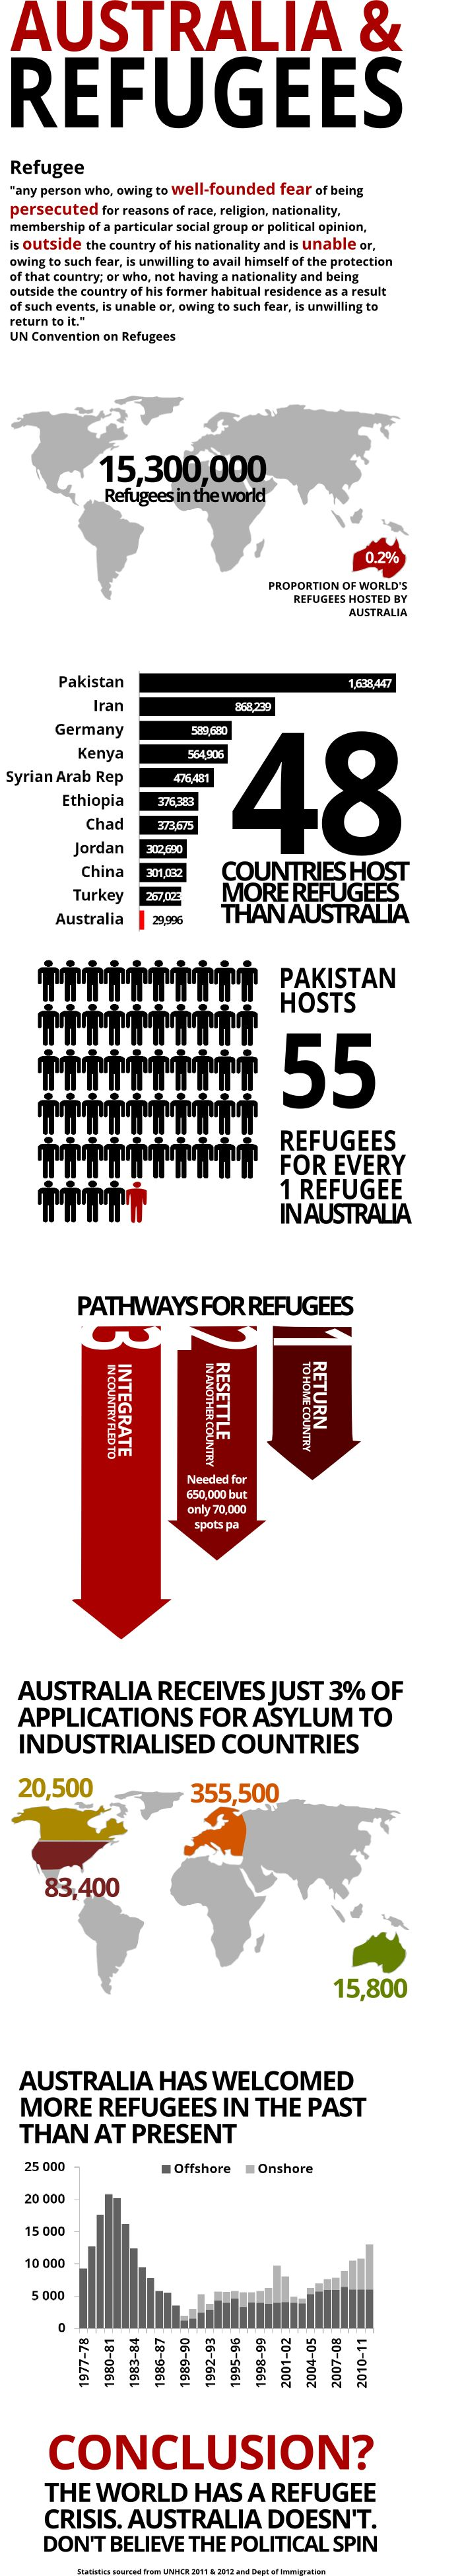 Refugee infographic. This makes me embarrassed by our government. No wonder the world is now looking at Australia as the MEAN country!